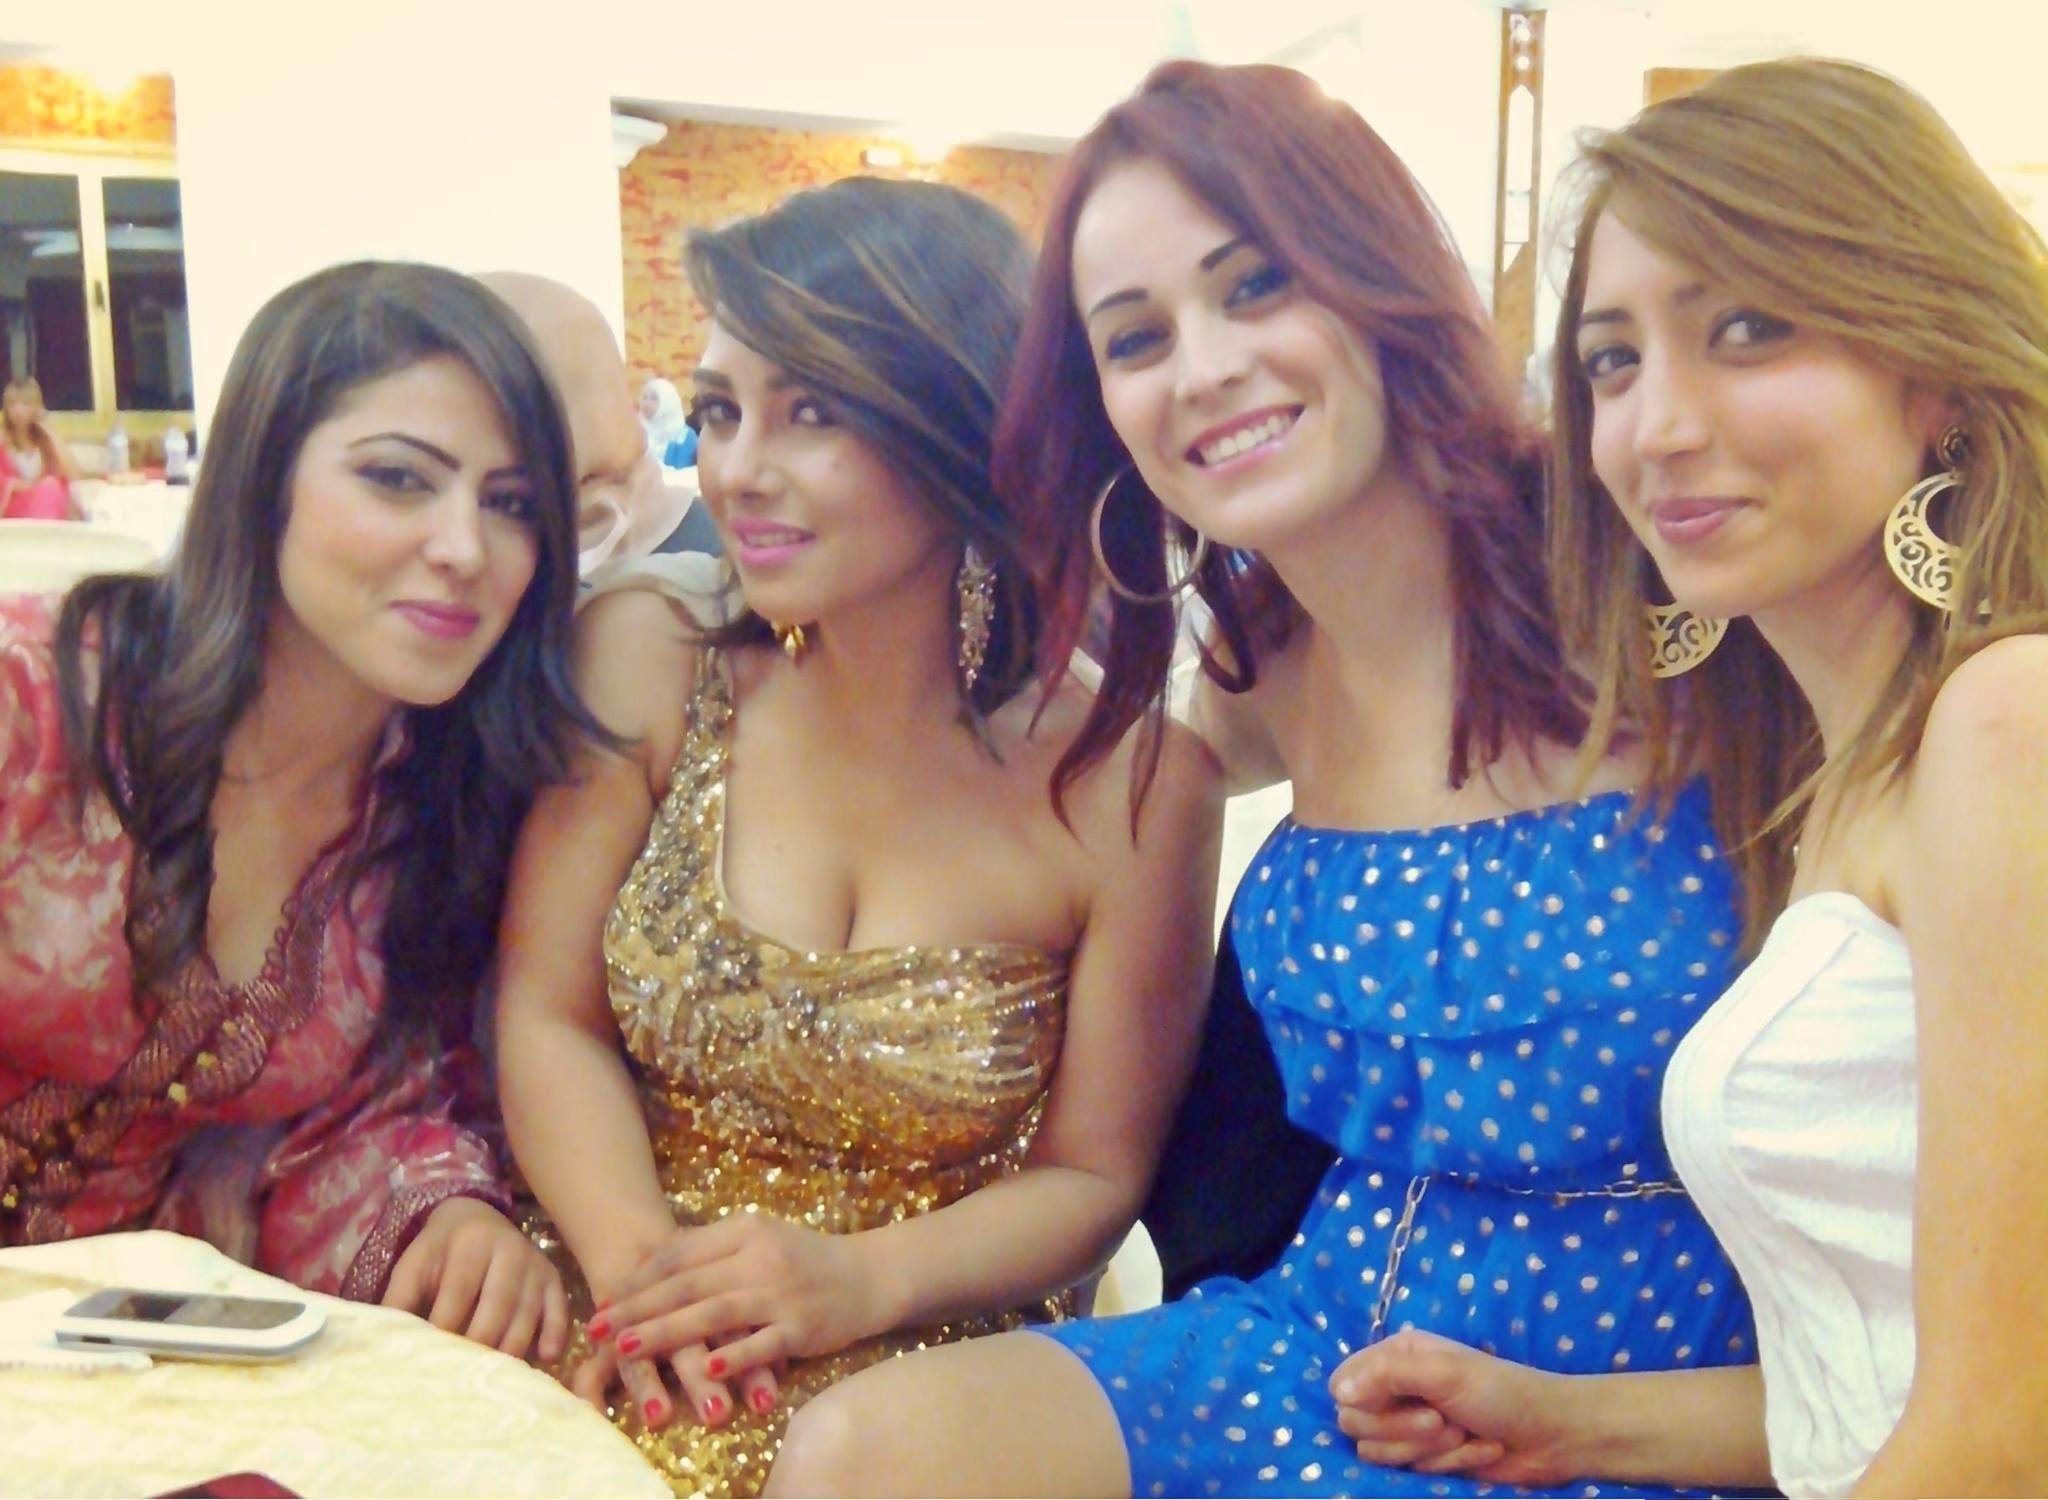 Pictures Of Beautiful Girls And Women From Tunisia -1065